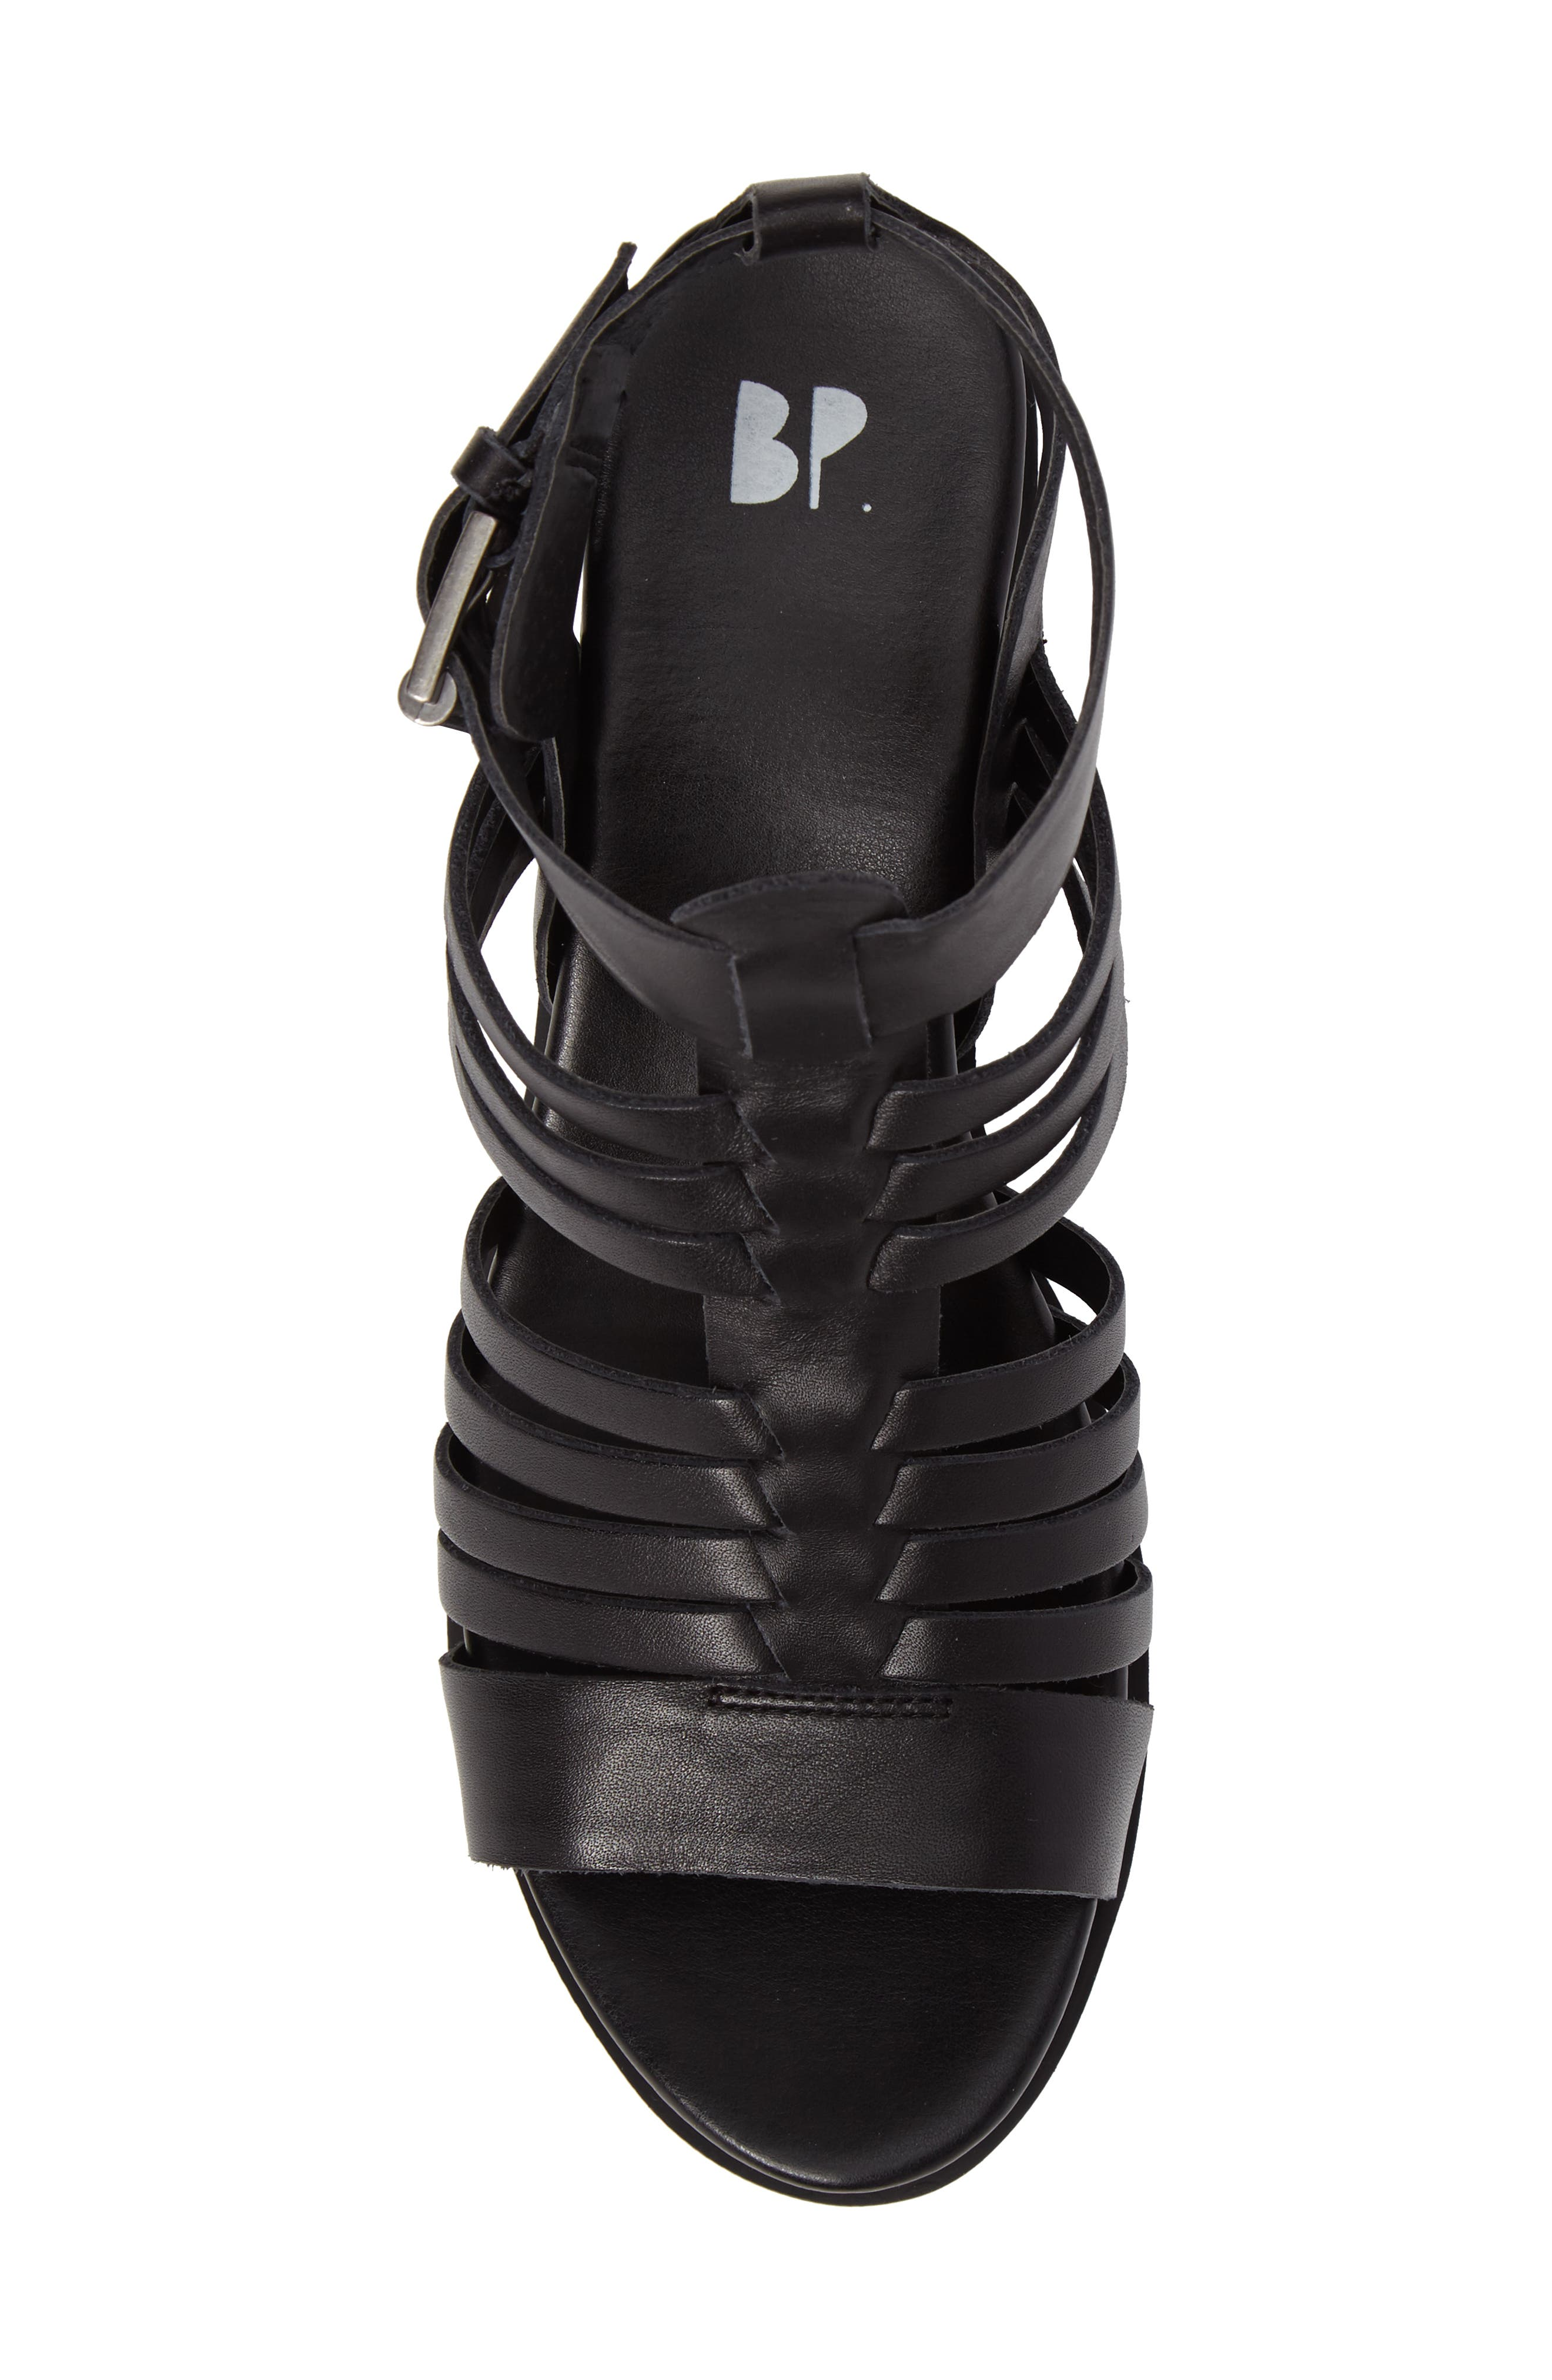 Ronnie Gladiator Platform Sandal,                             Alternate thumbnail 5, color,                             Black Leather